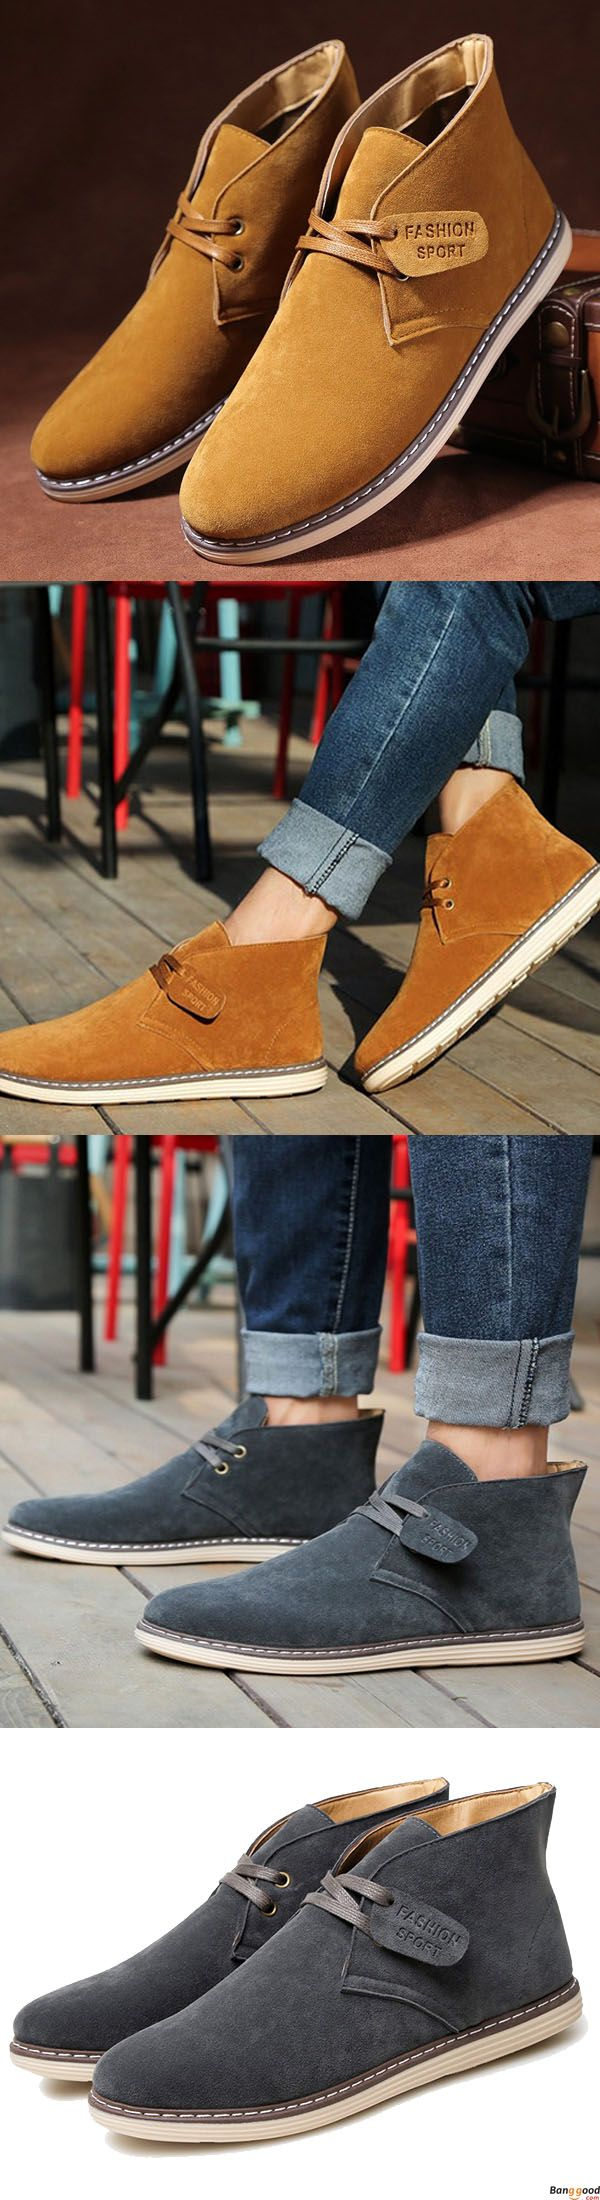 Men Soft Suede Leather High Top Flat Sneakers Boots. $49.99 + Free Shipping. Comfy and casual. Casual style for man. Shop at banggood now.